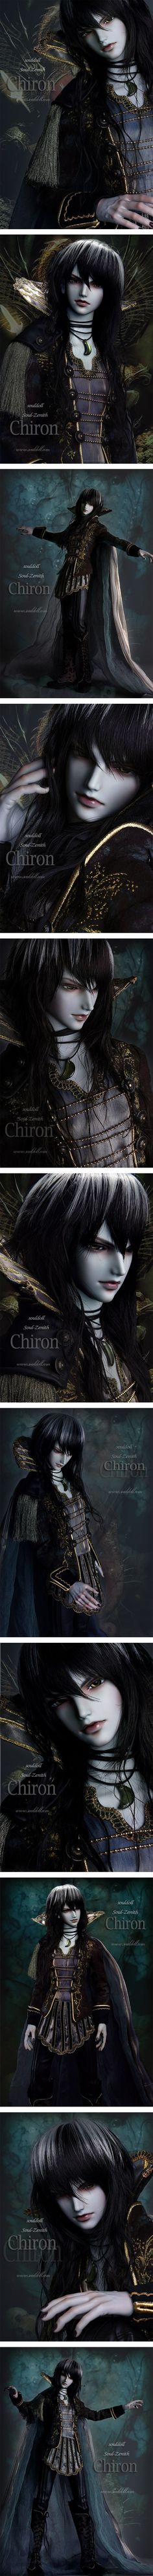 Chiron-human ver. 69cm, Soul Doll - BJD Dolls, Accessories - Alice's Collections